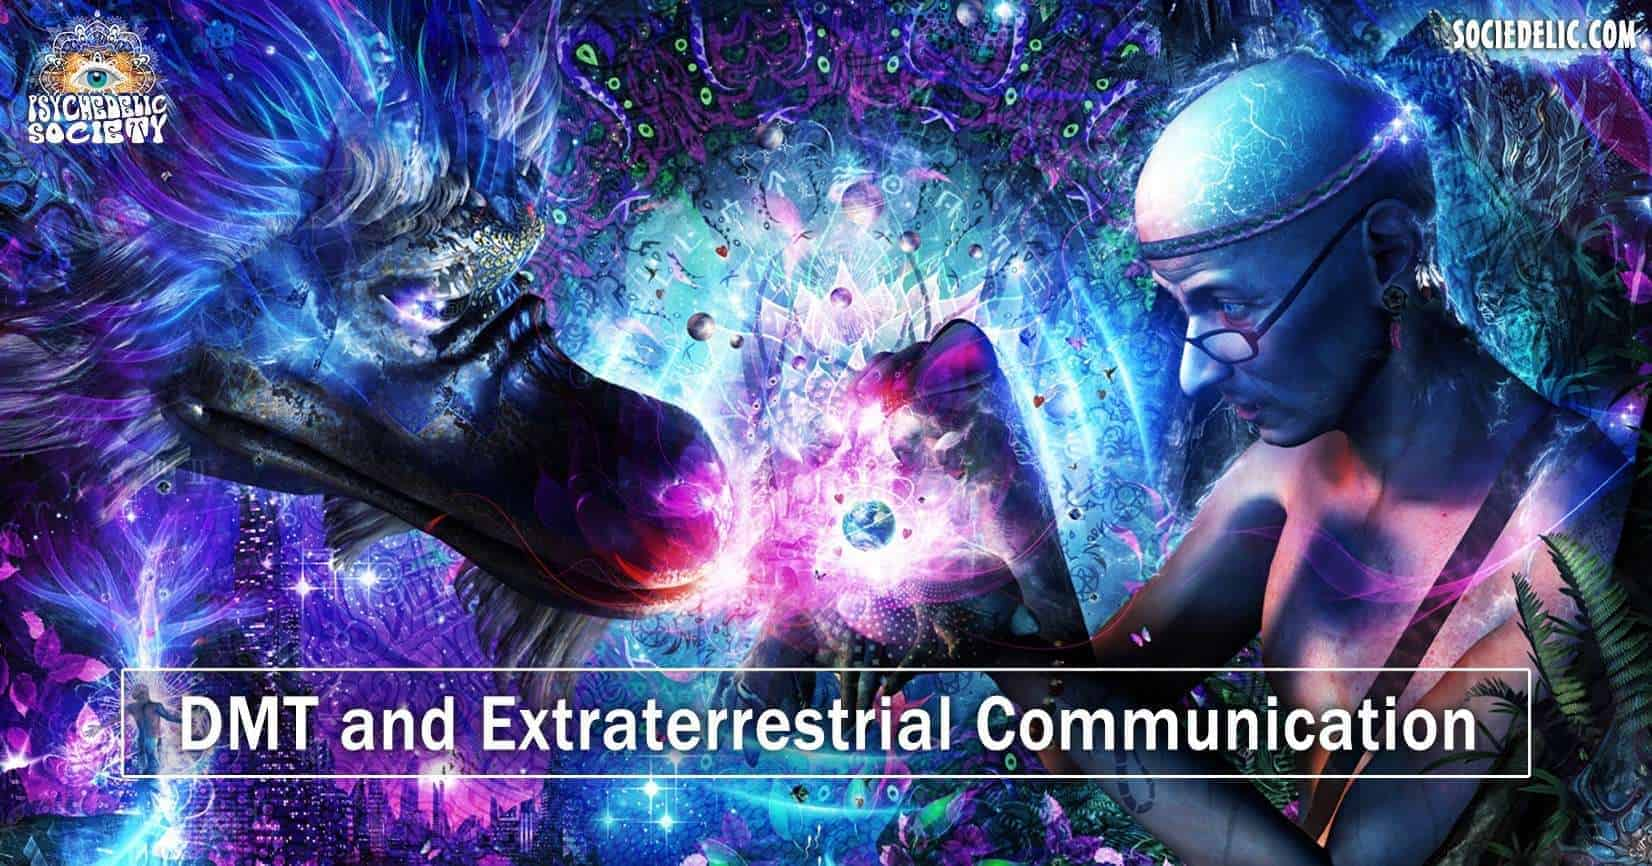 DMT and Extraterrestrial Communication - Psychedelic